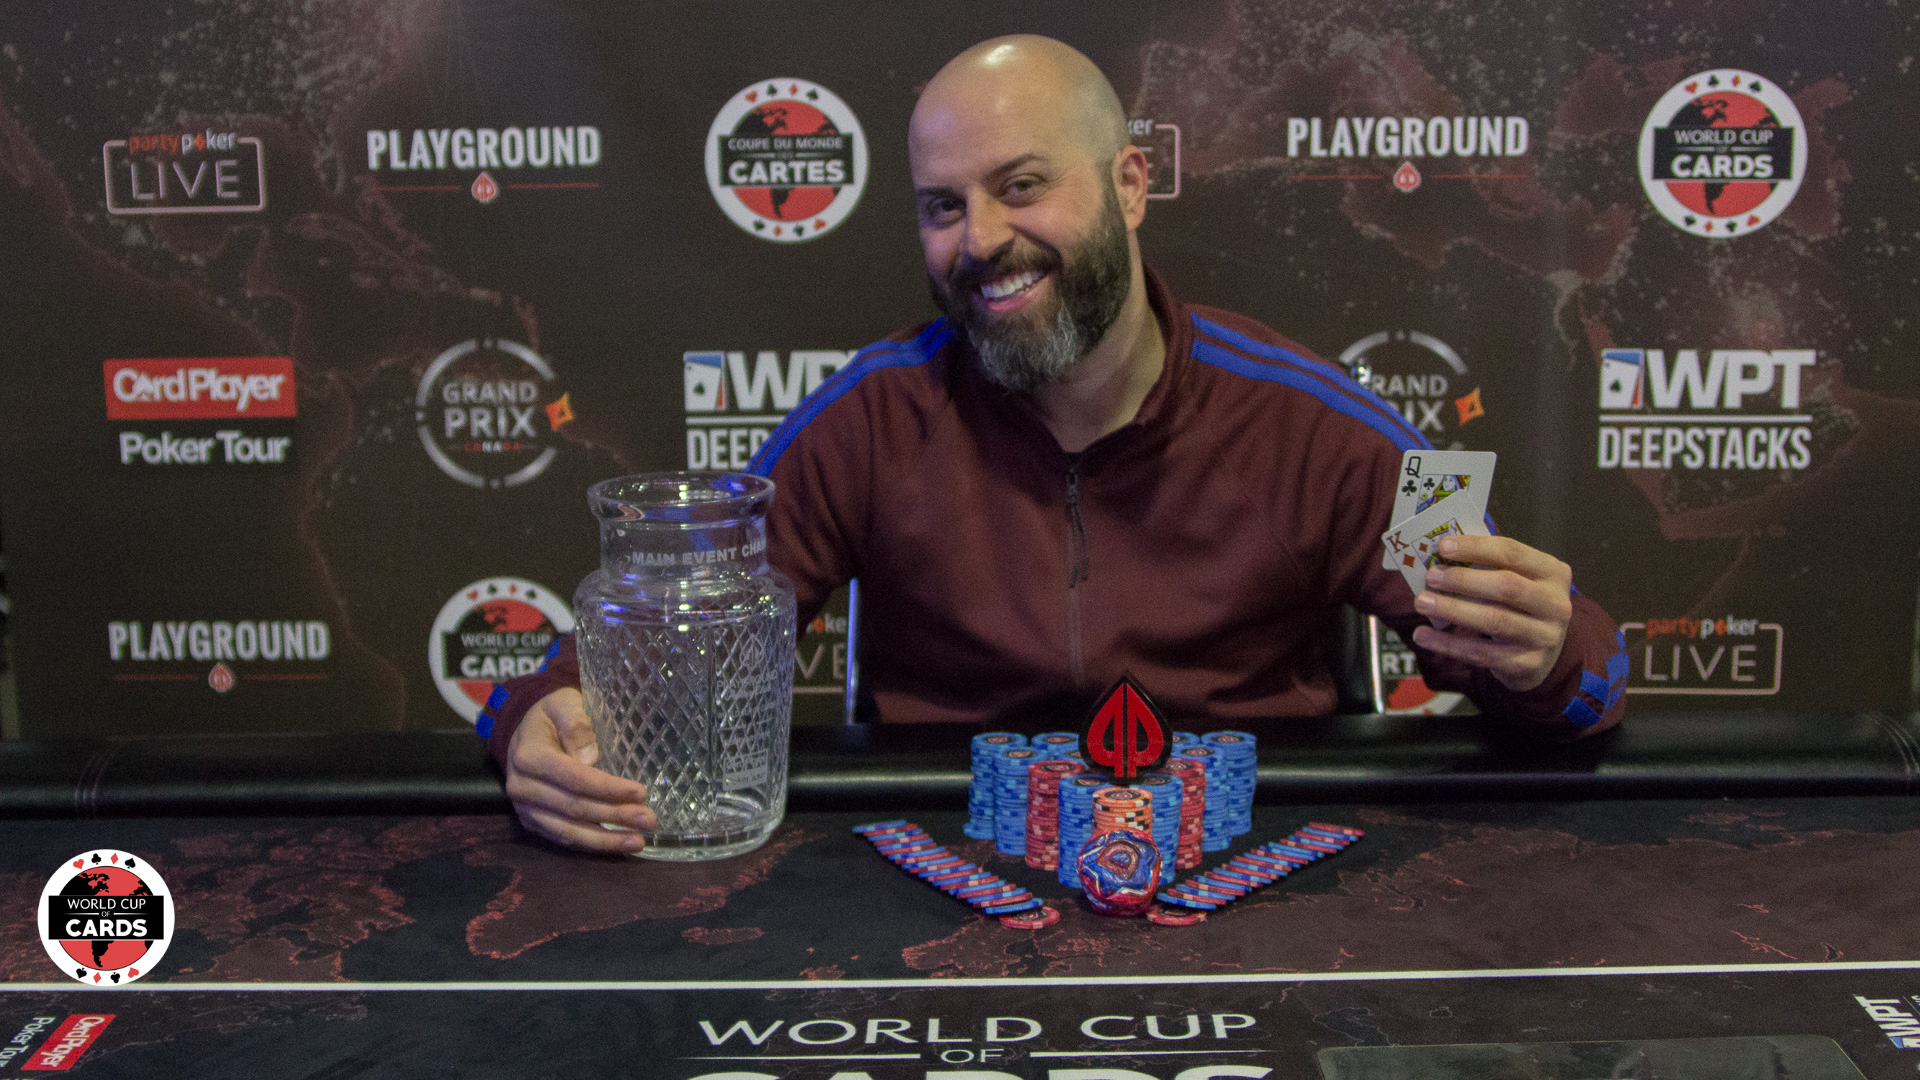 Danny Ibrahim is the Card Player Poker Tour Champion!